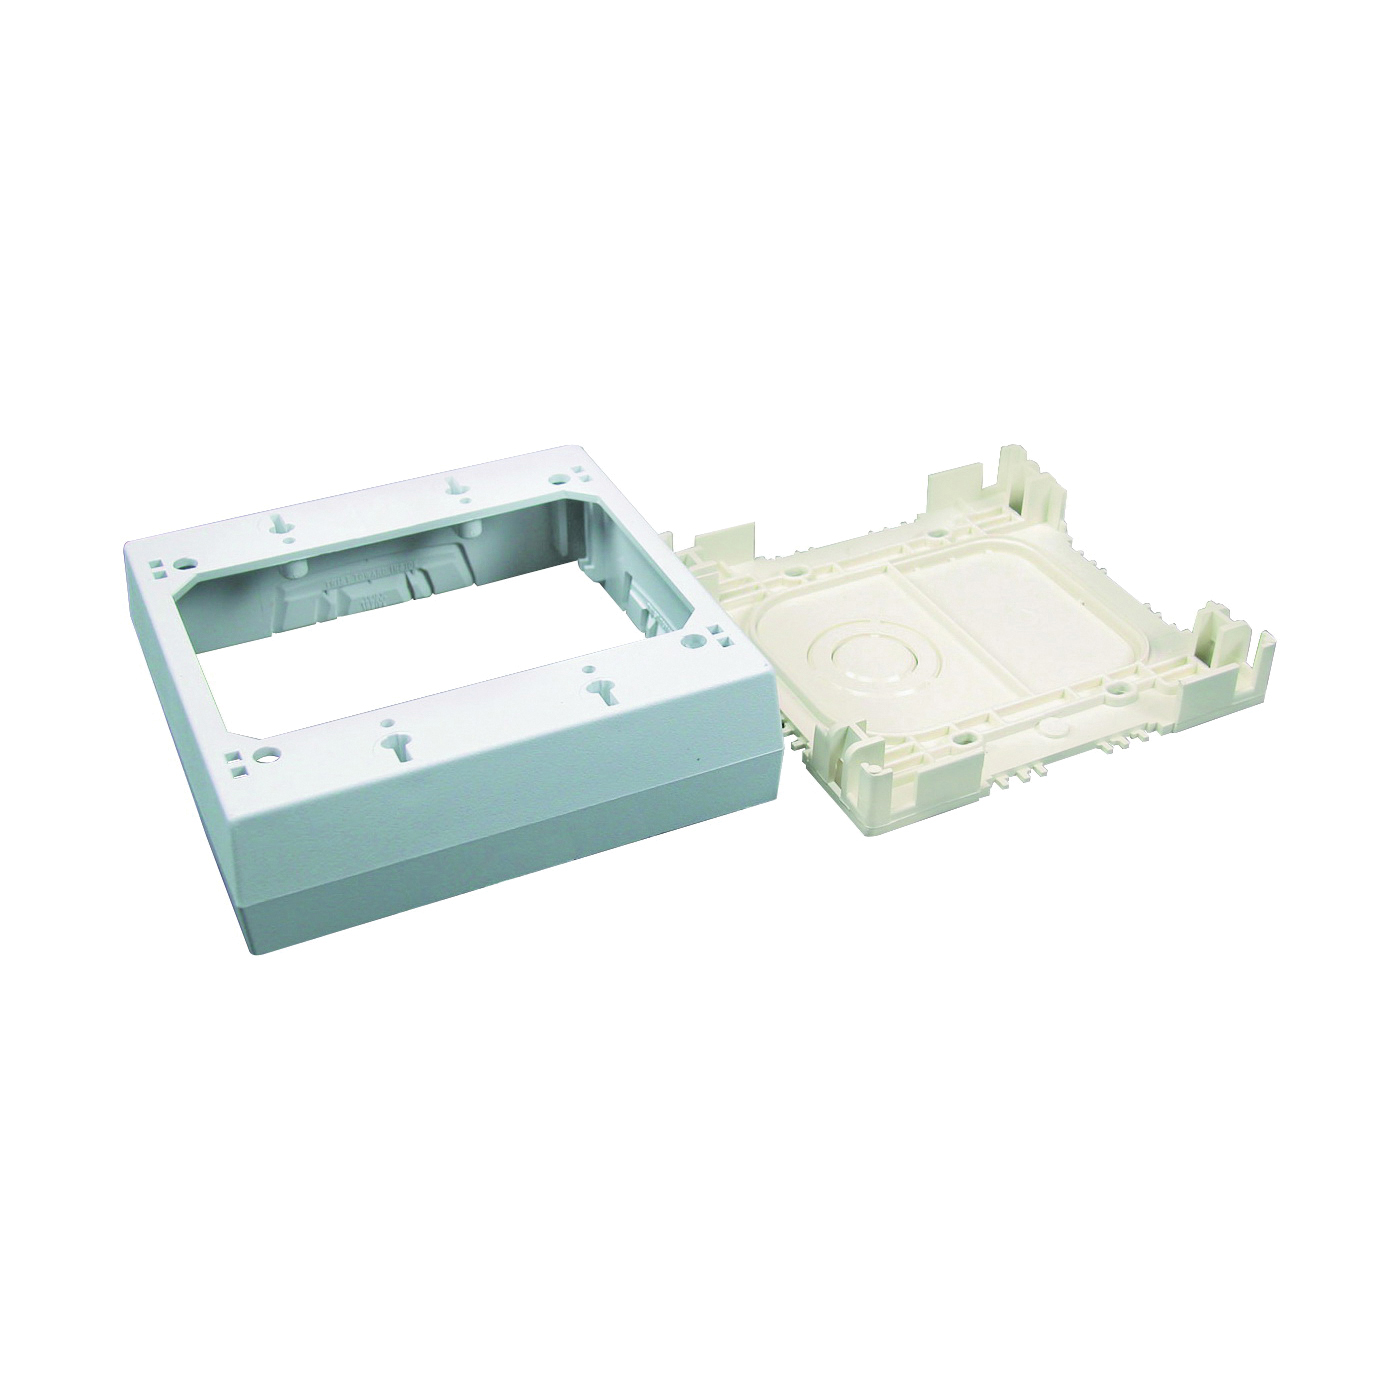 Picture of Legrand Wiremold NMW Series NMW3-2 Outlet Box, 2-Gang, Plastic, White, Wall Mounting